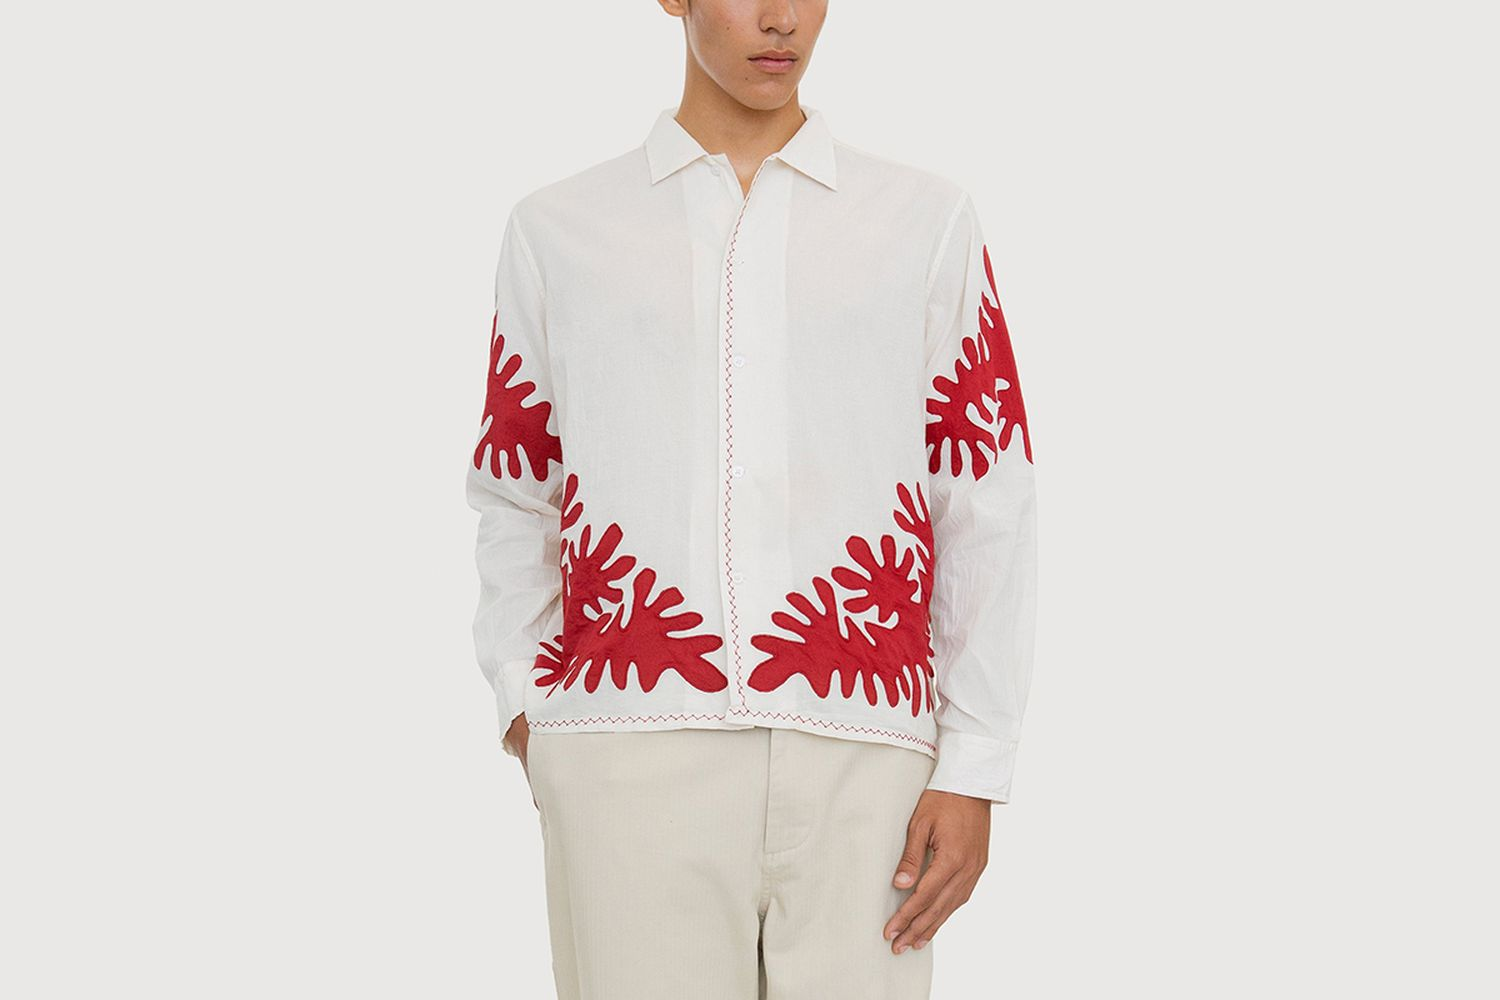 Cut-Out Applique Shirt